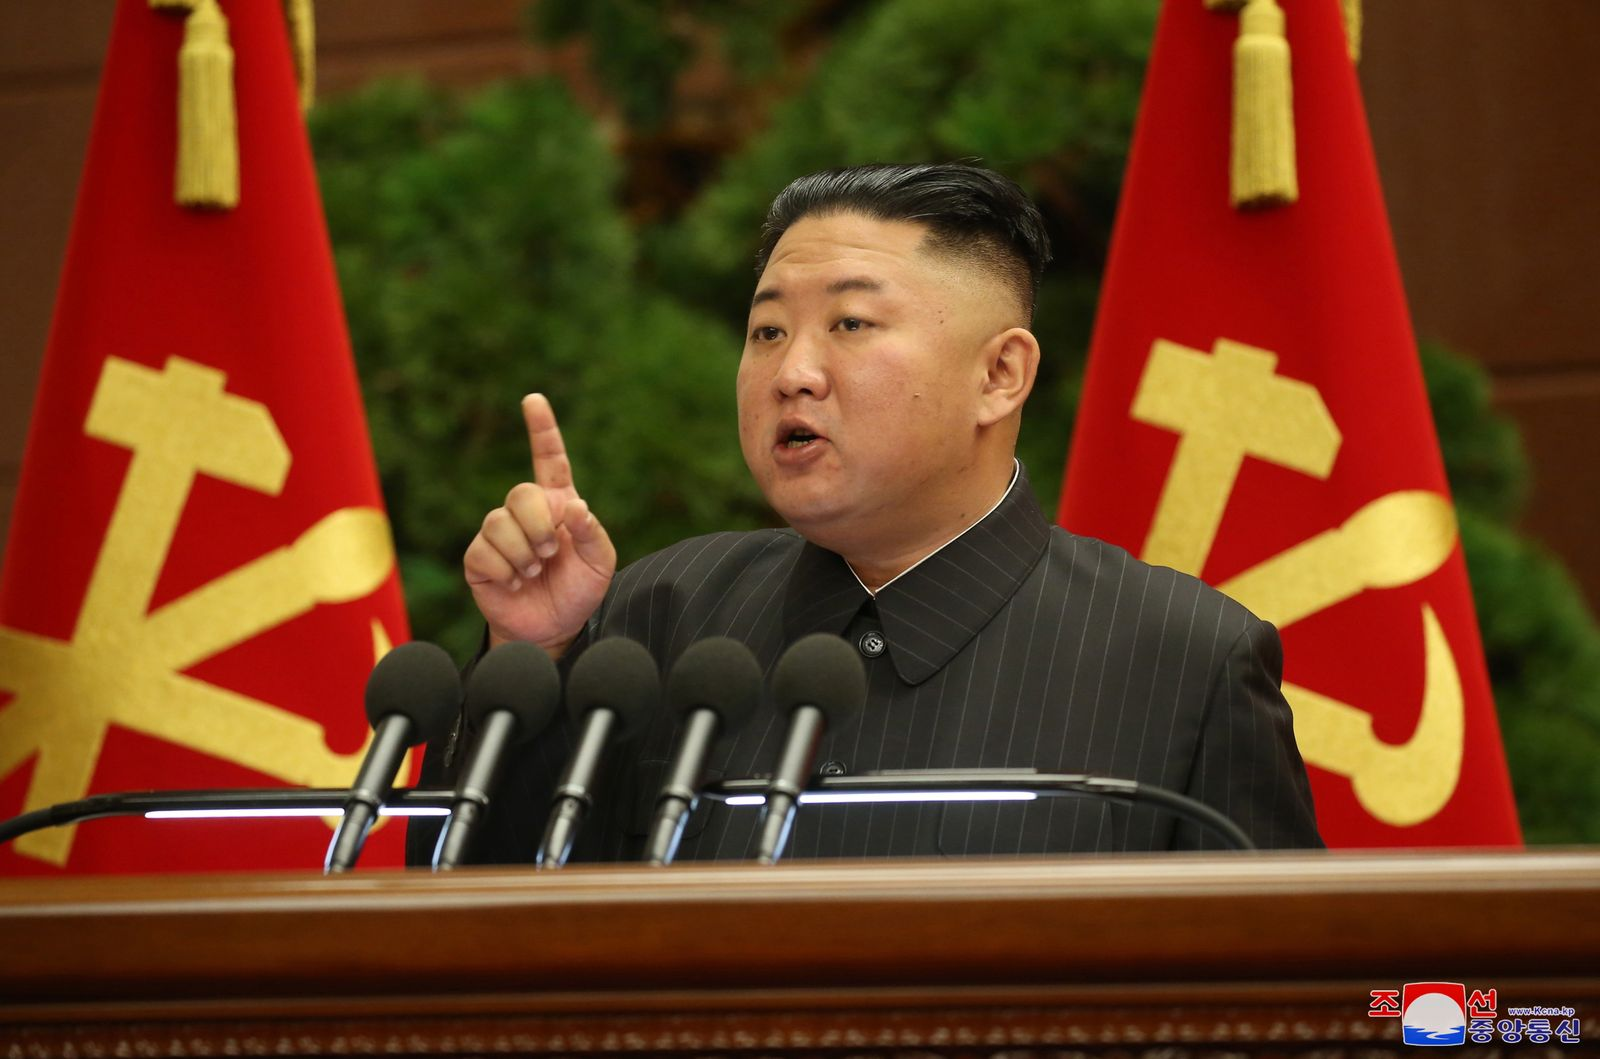 Kim Jong-un reportedly rebukes officials over unspecified pandemic-related incident